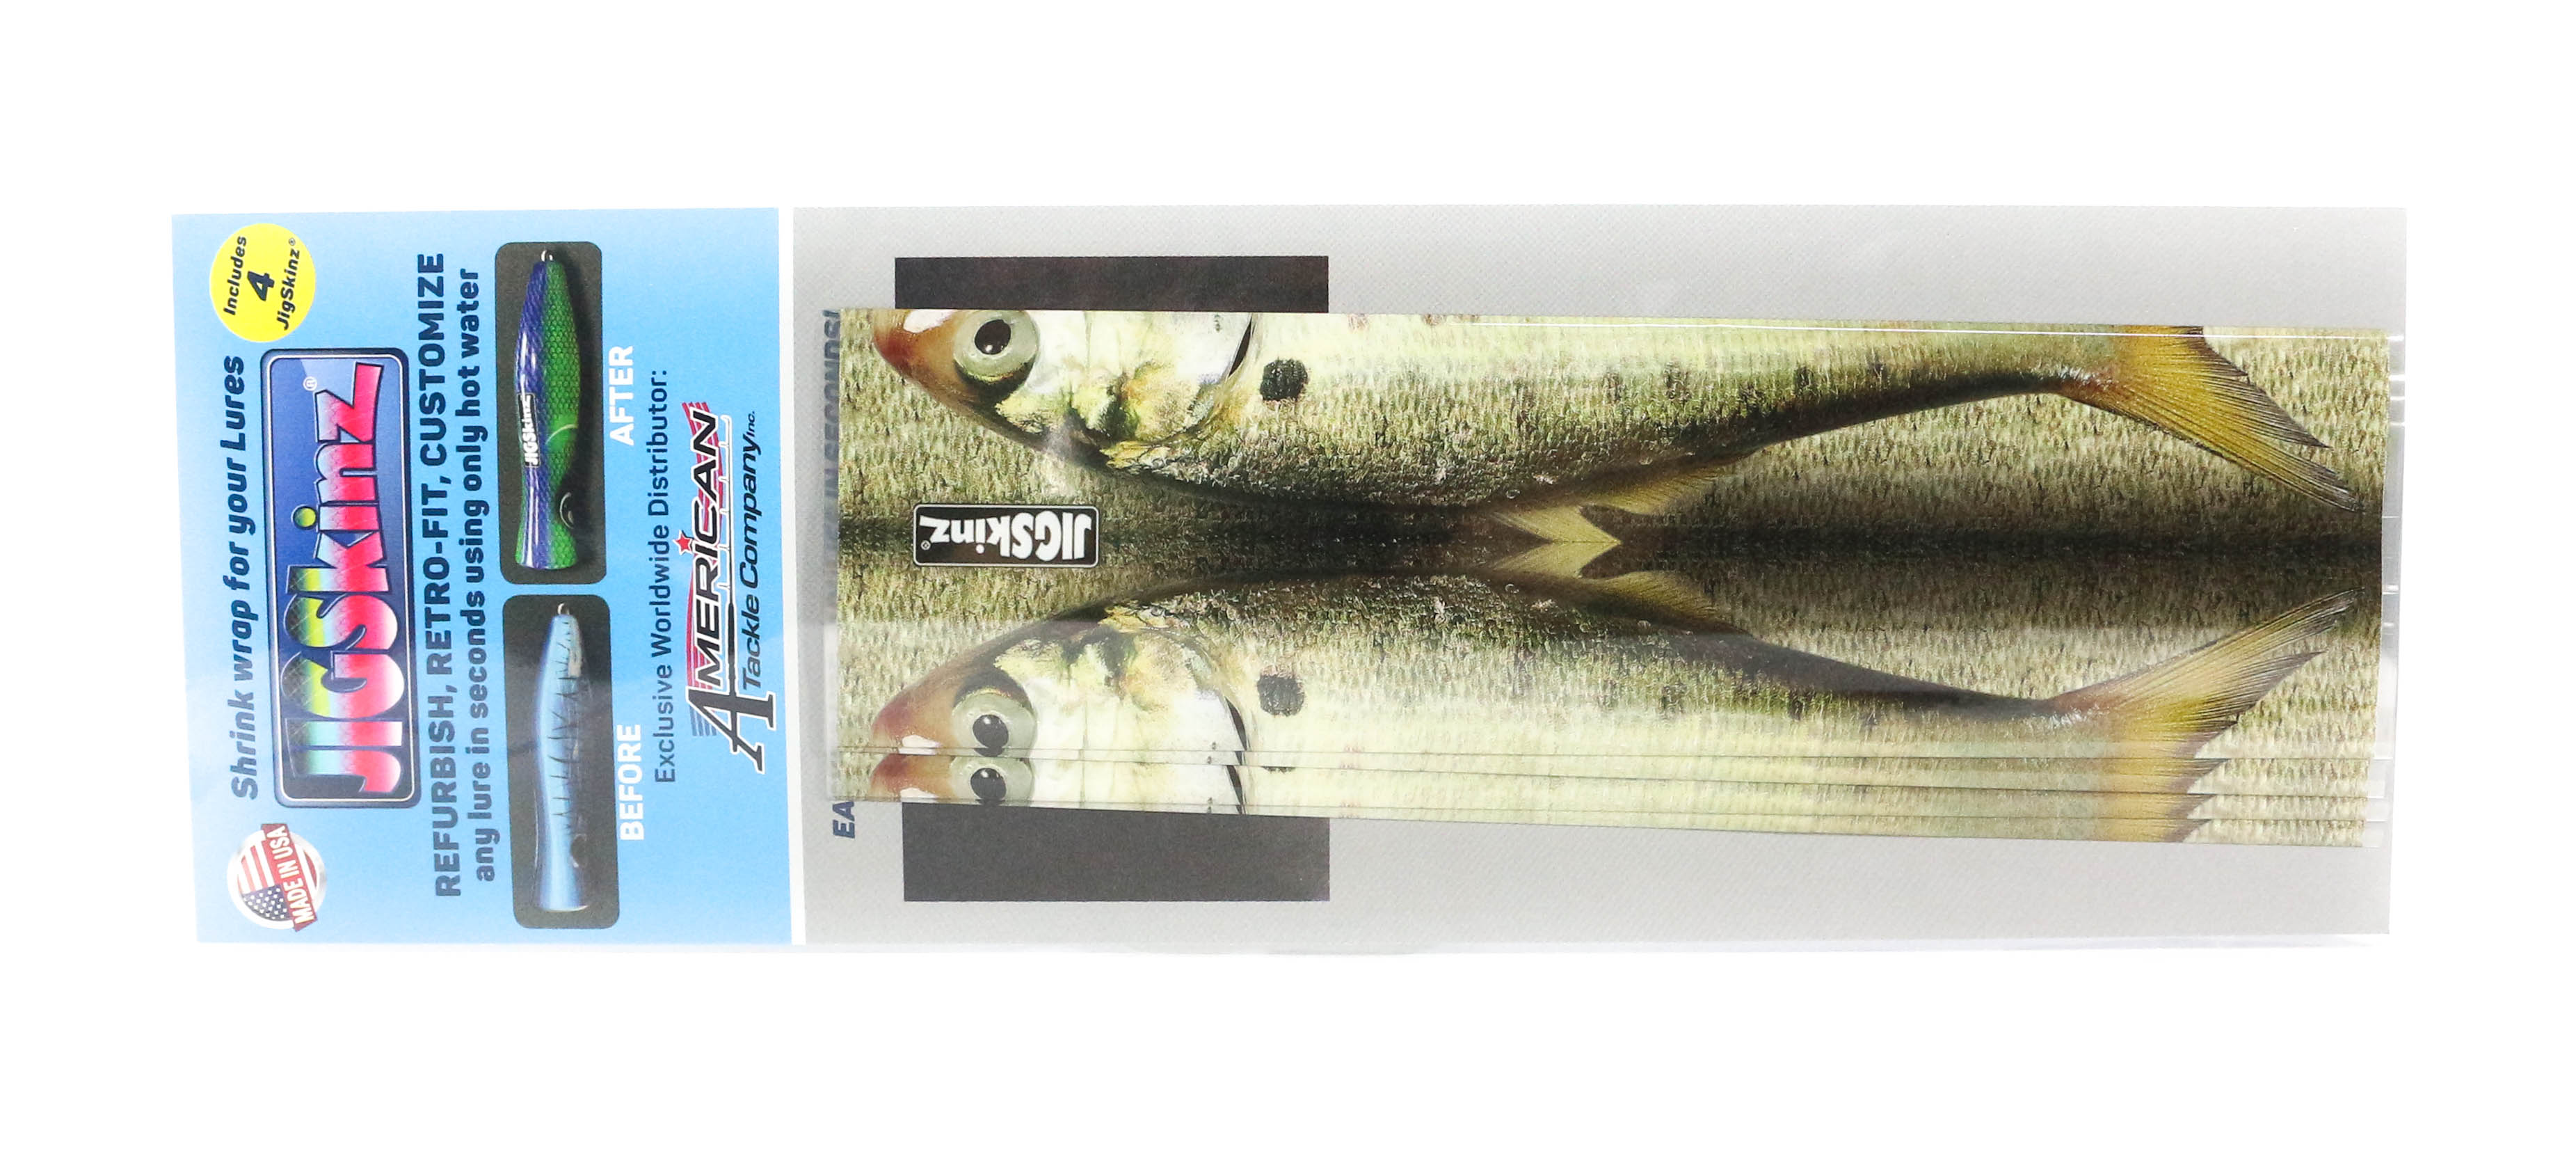 Jigskinz JZRLMH-L4 RL Menhaden 200 x 110mm x 4 pieces Large (7776)